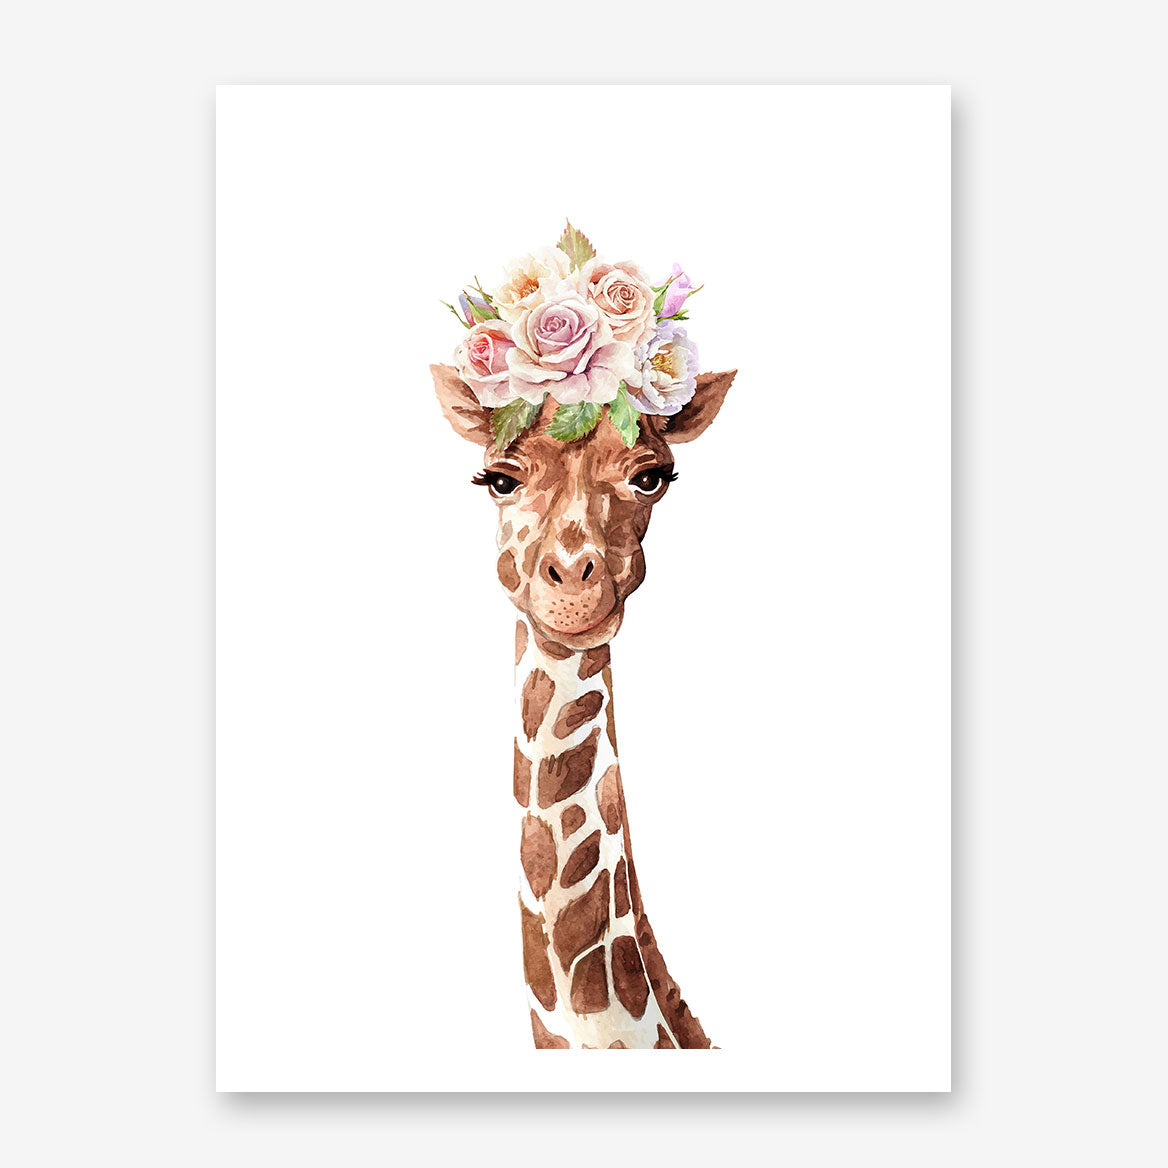 Art print with a watercolour giraffe with pastel flowers crown, on white background